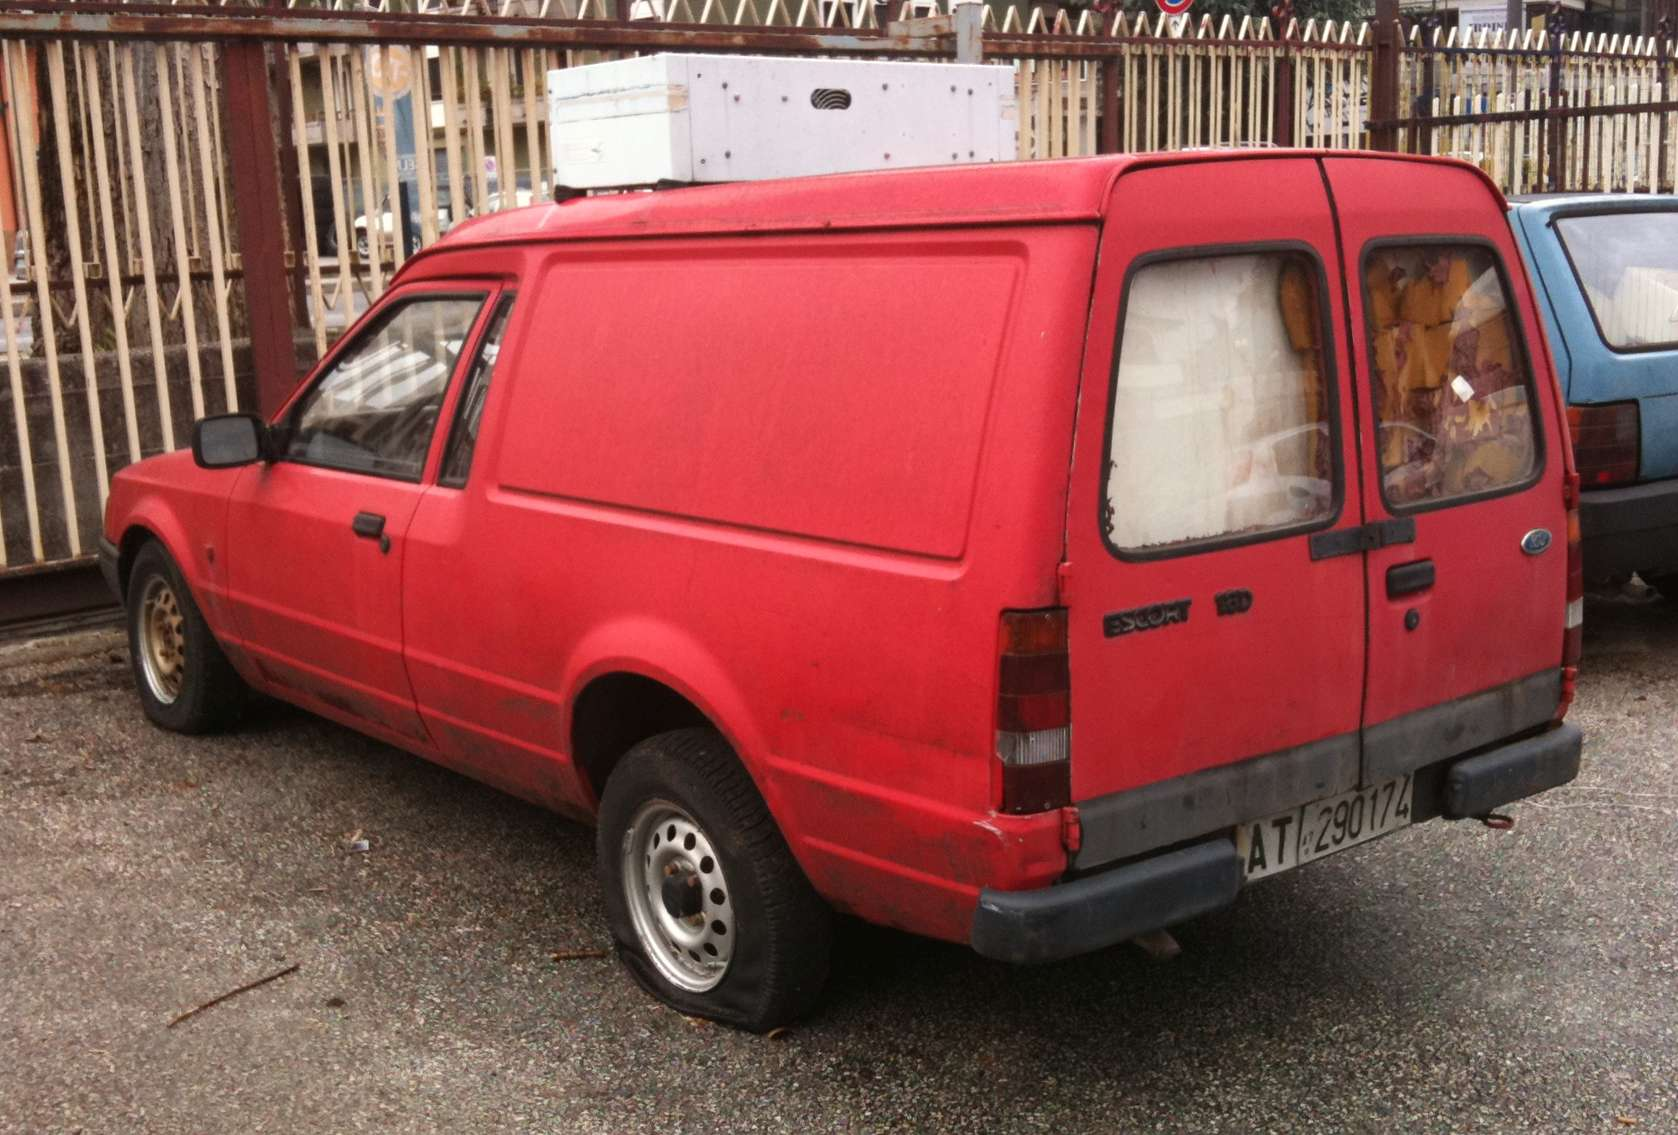 Ford Escort Van #7107452